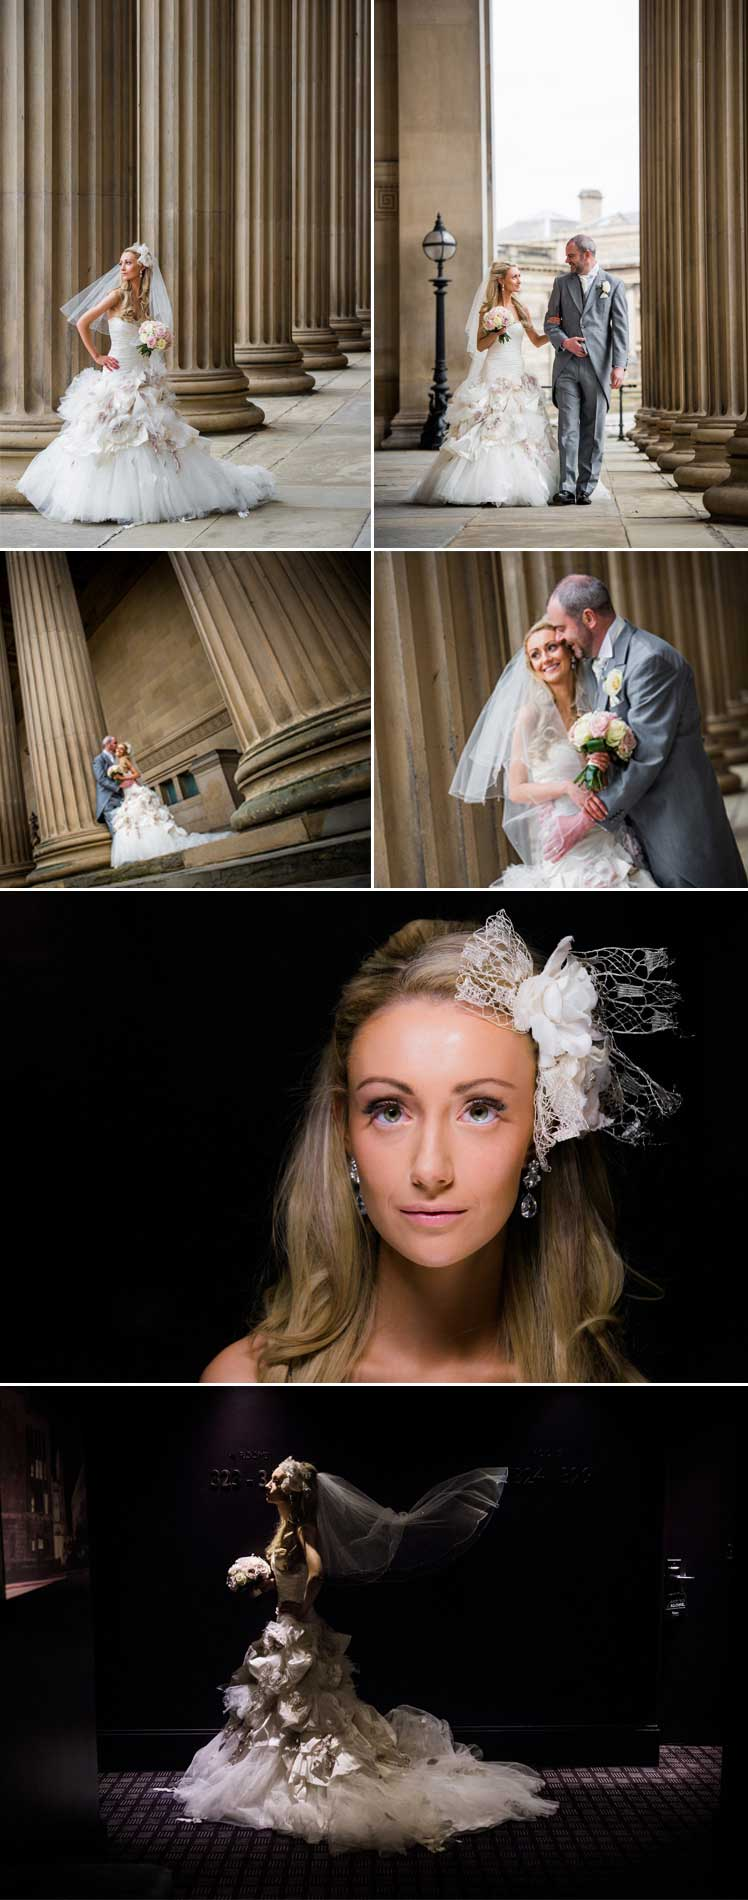 Beautiful wedding images captured by Matthew Rycraft